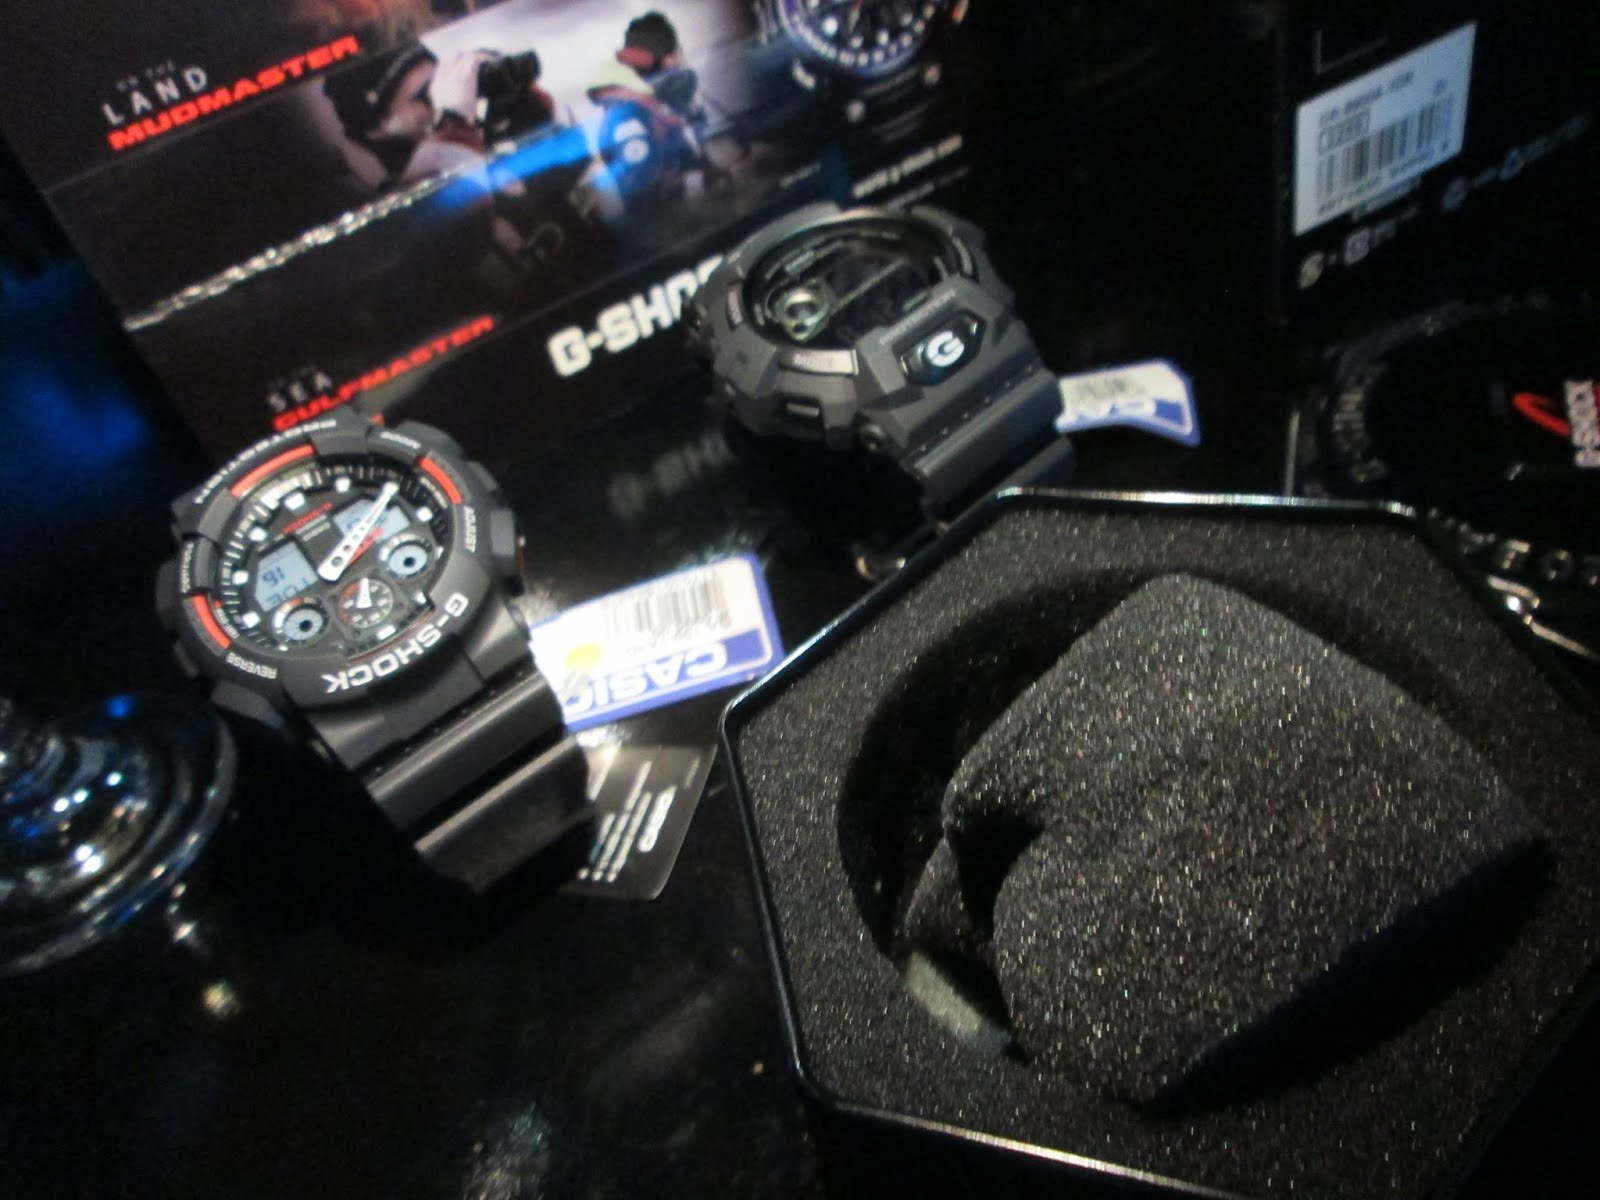 GShock Sea, Land, Air Precision